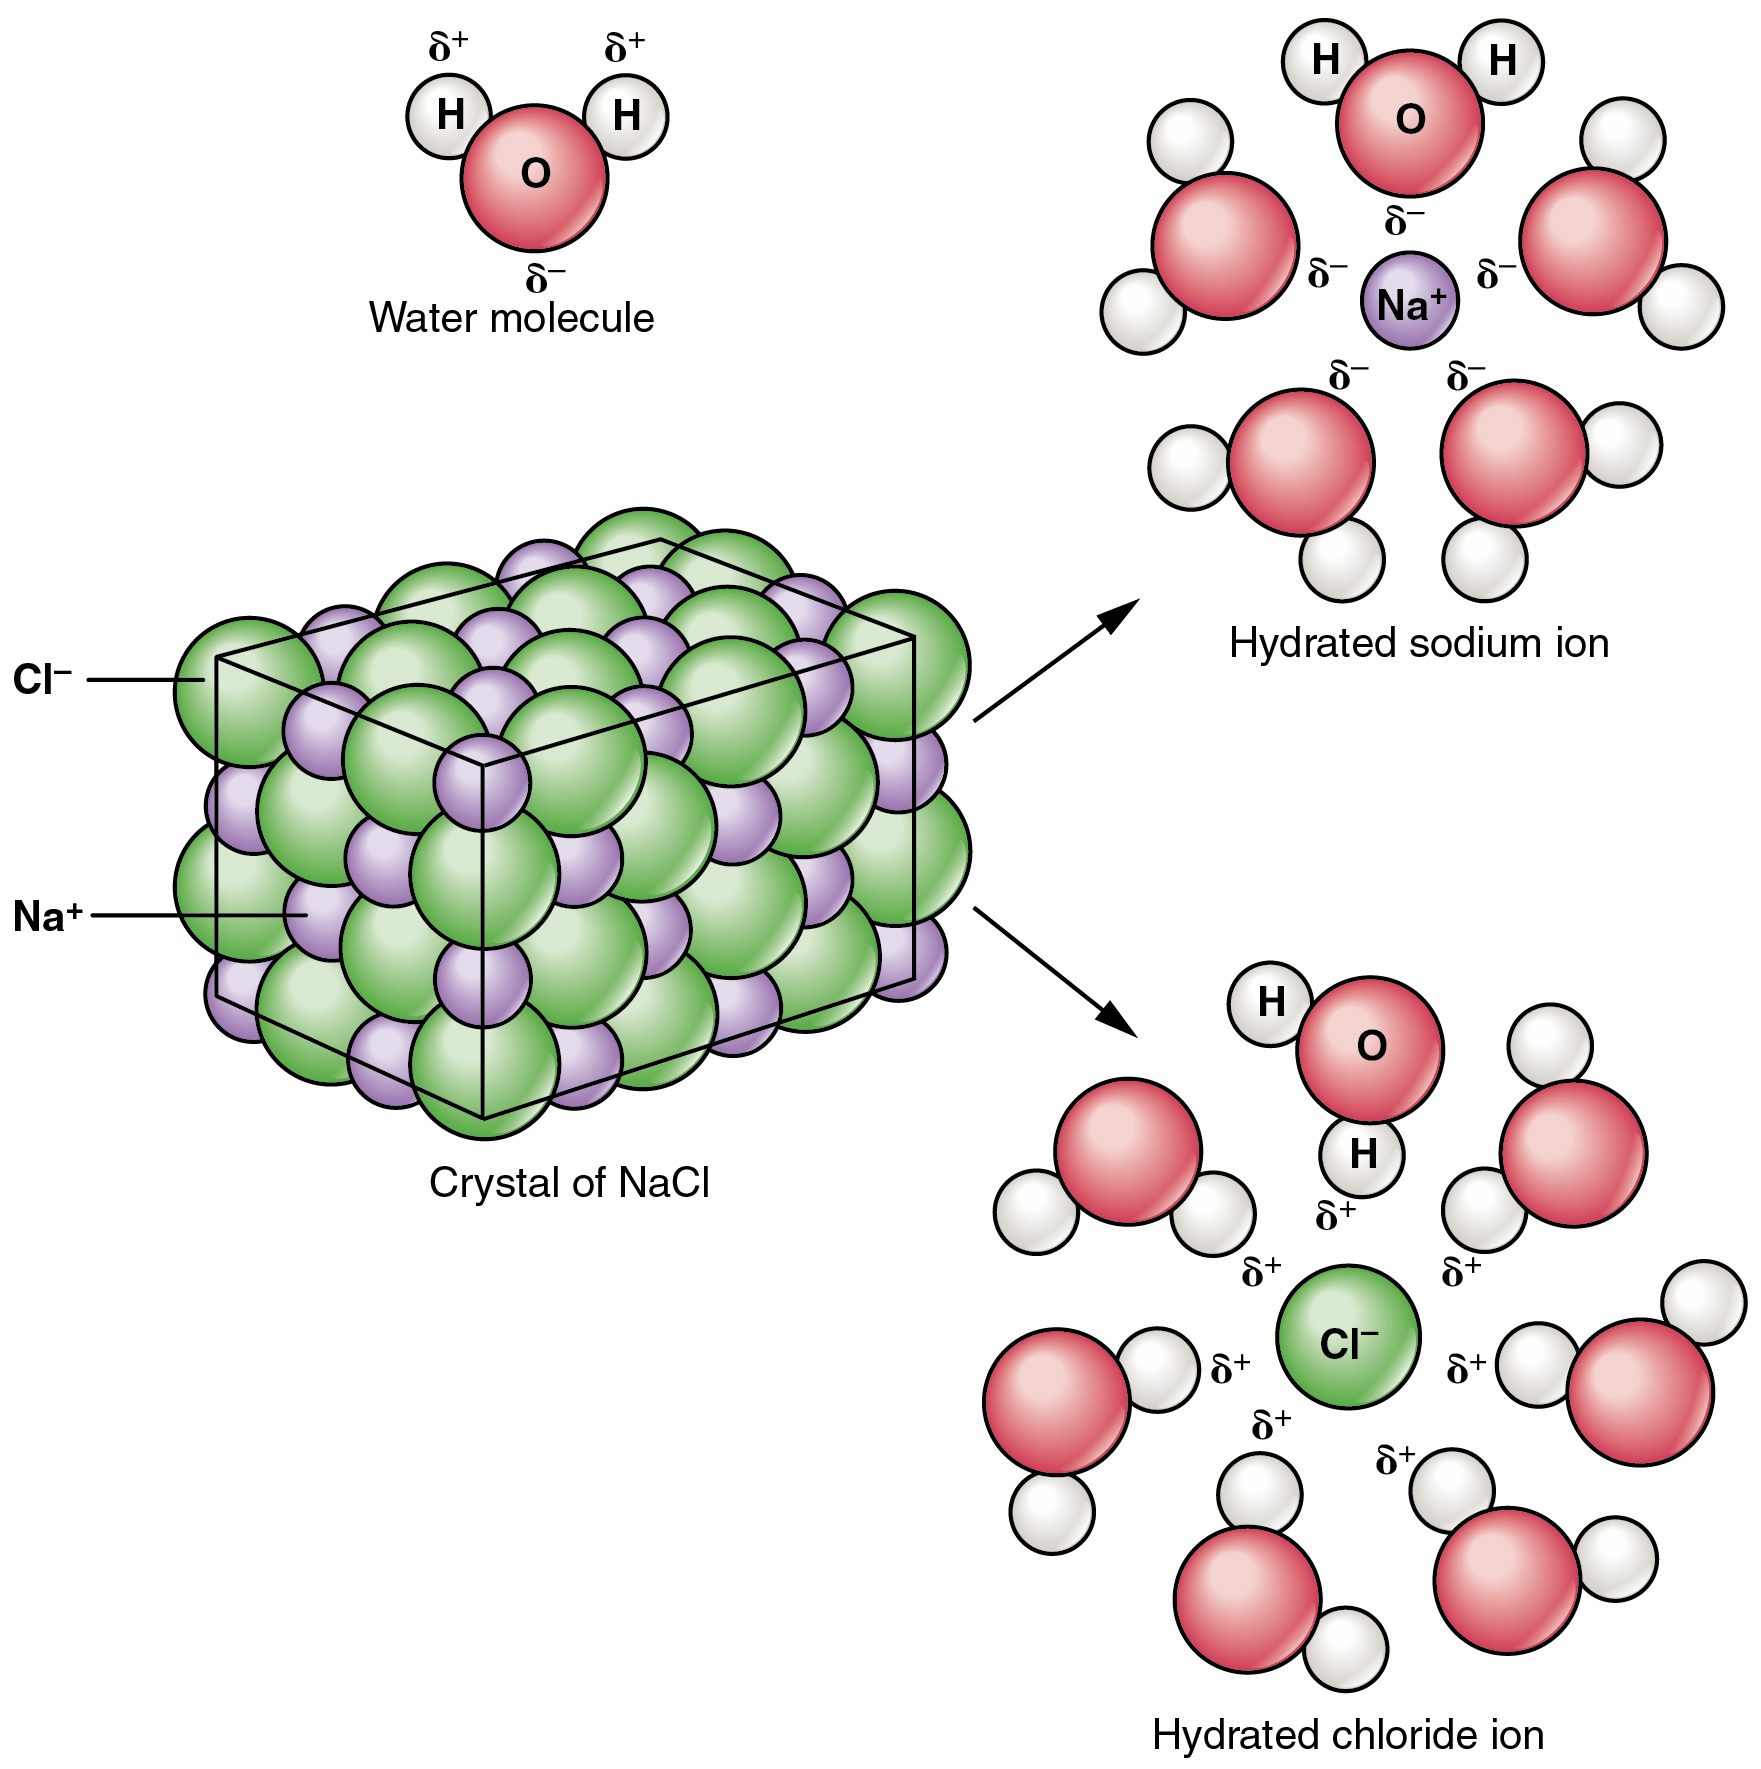 This figure shows a crystal lattice of sodium chloride interacting with water to form a hydrated sodium ion and a hydrated chloride ion.